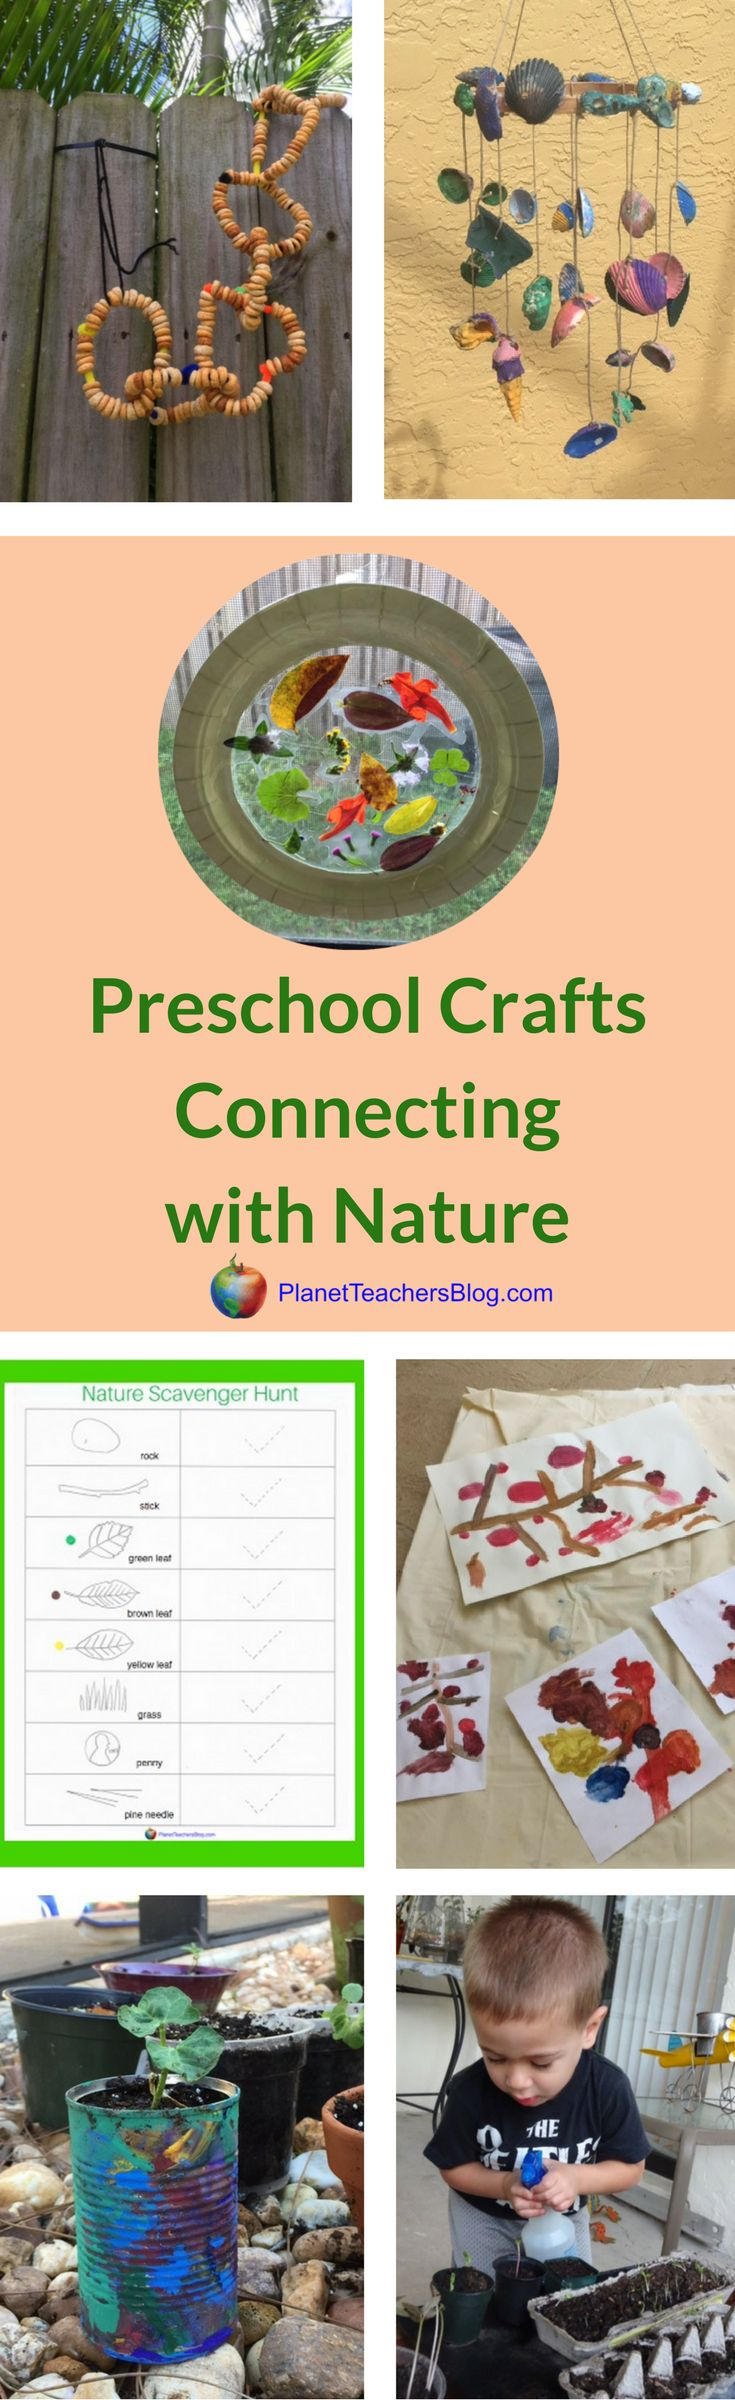 These 7 nature inspired crafts and activities are ones that we've come back to again and again. These crafts are great for toddlers and preschoolers. Exposing early learners to nature helps them practice observation (an important life skill) and notice the changes that take place outside.